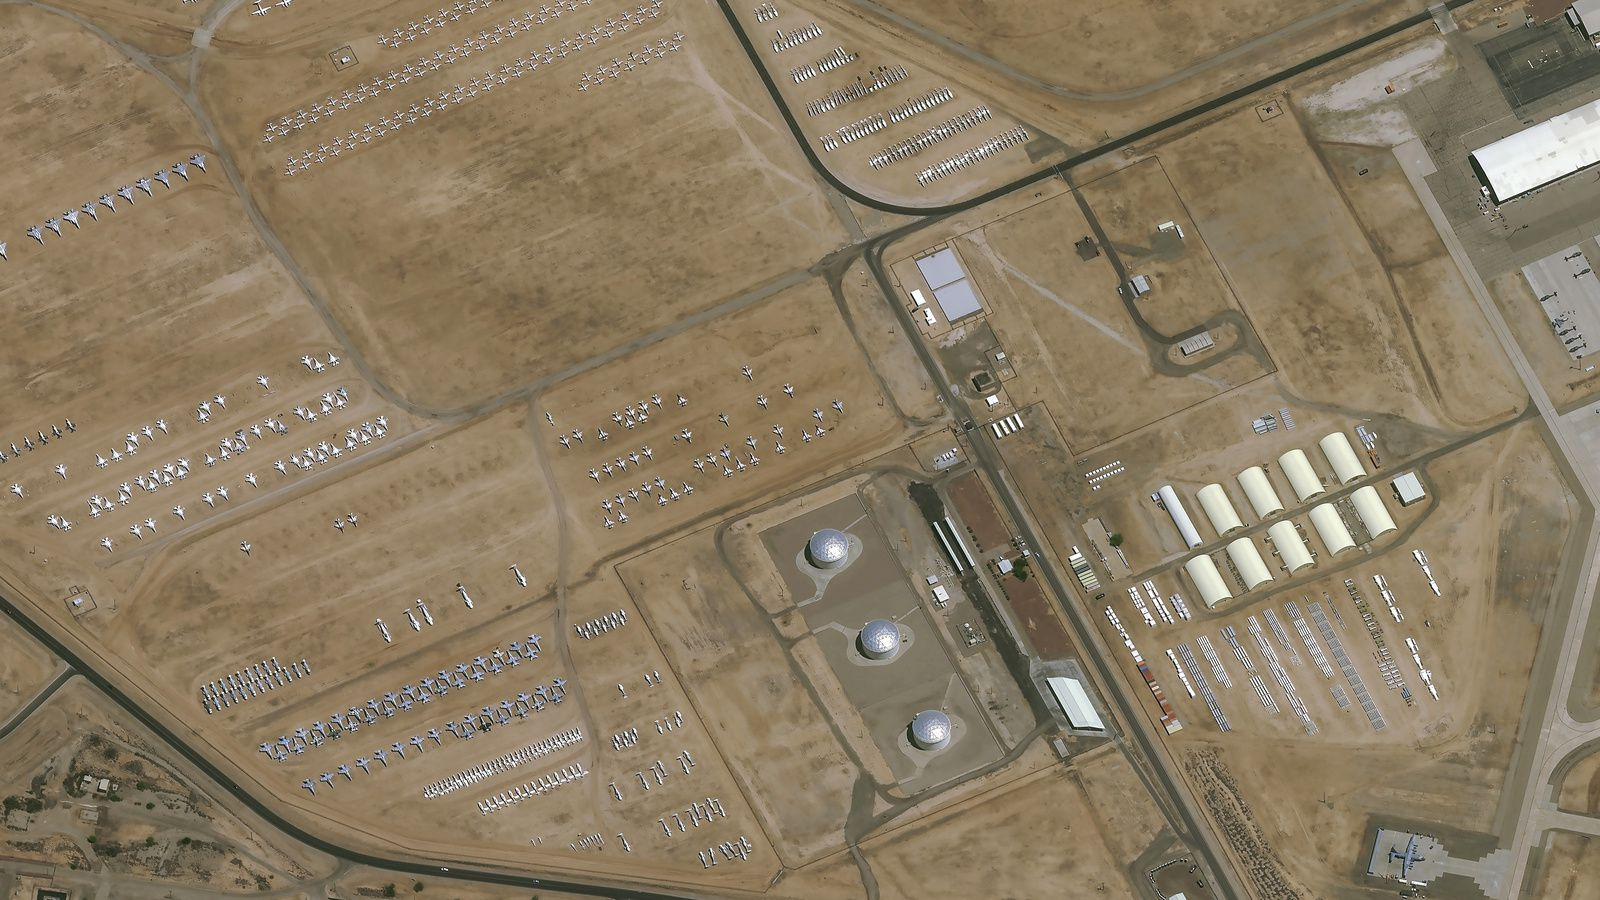 Pléiades Neo - Pleiades Neo 3 - Tucson - Cimetière d'avion - Davis Monthan Airforce Base - 309th ARMARG - Aircraft boneyard - graveyard - Satellite - Earth observation - Intelligence - GEOINT - Very high resolution - Airbus Defence and Space